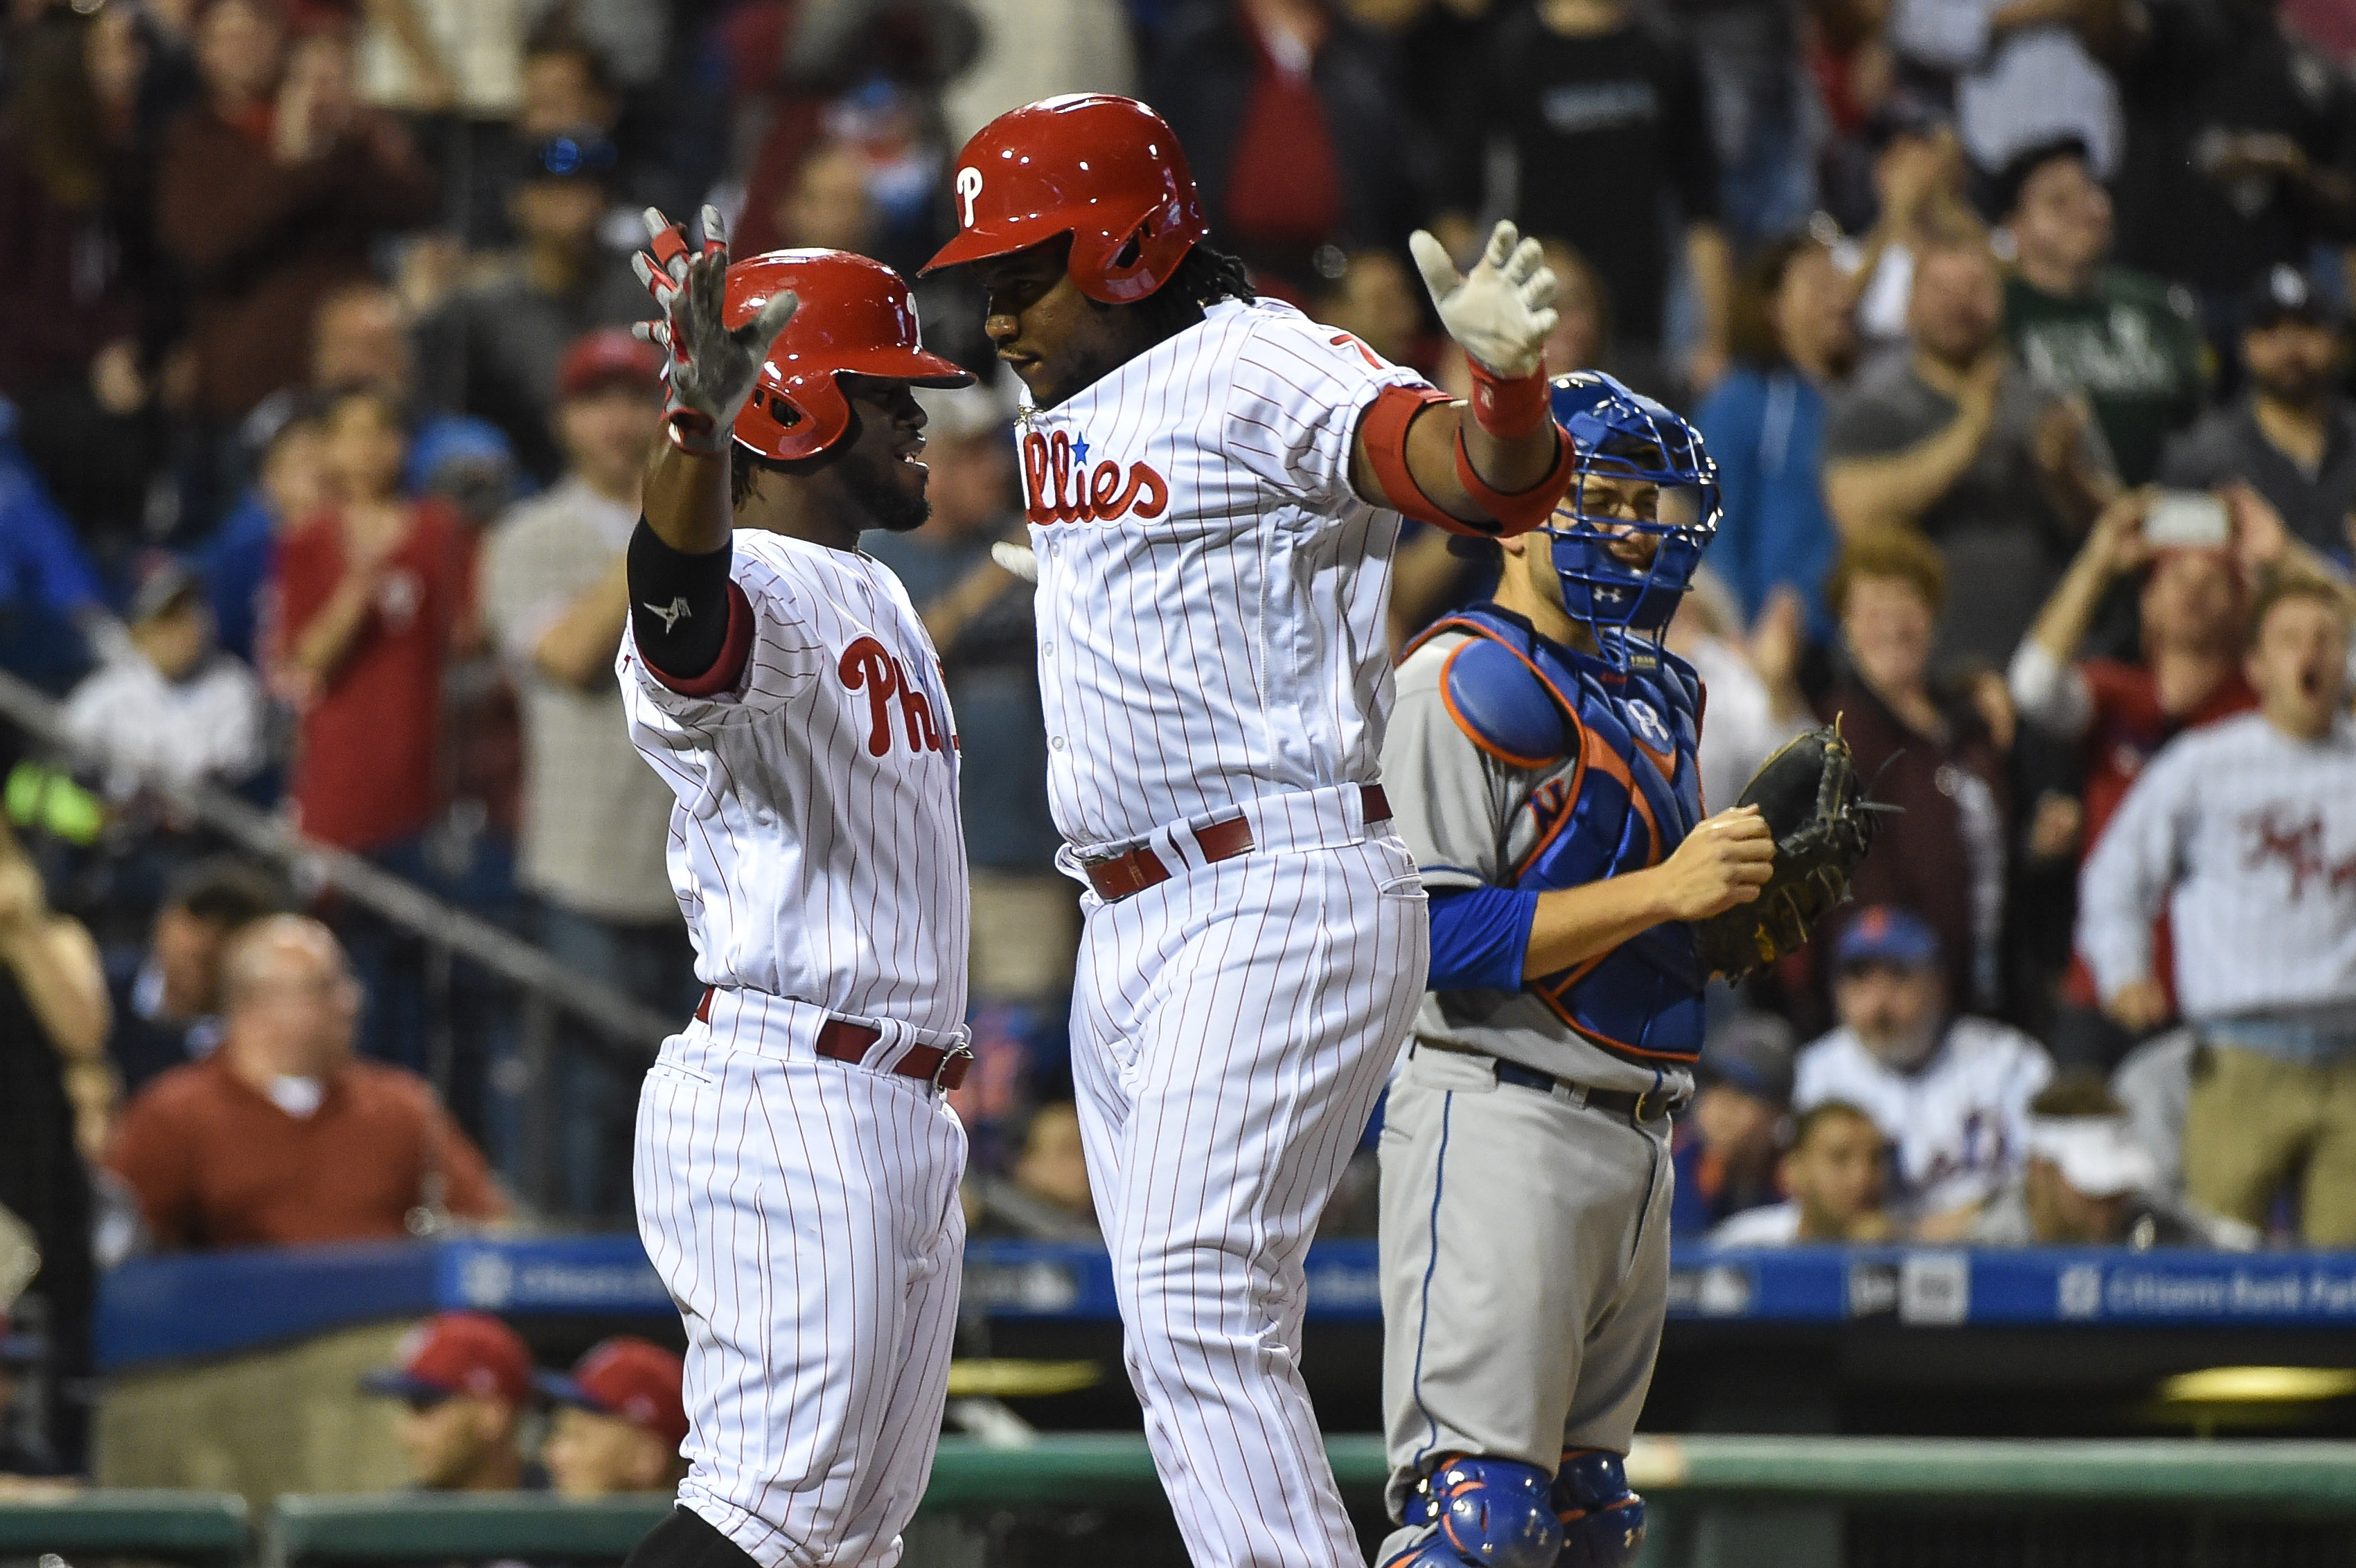 Bryce Harper goes deep twice, lifts Nattionals over Phils 6-4